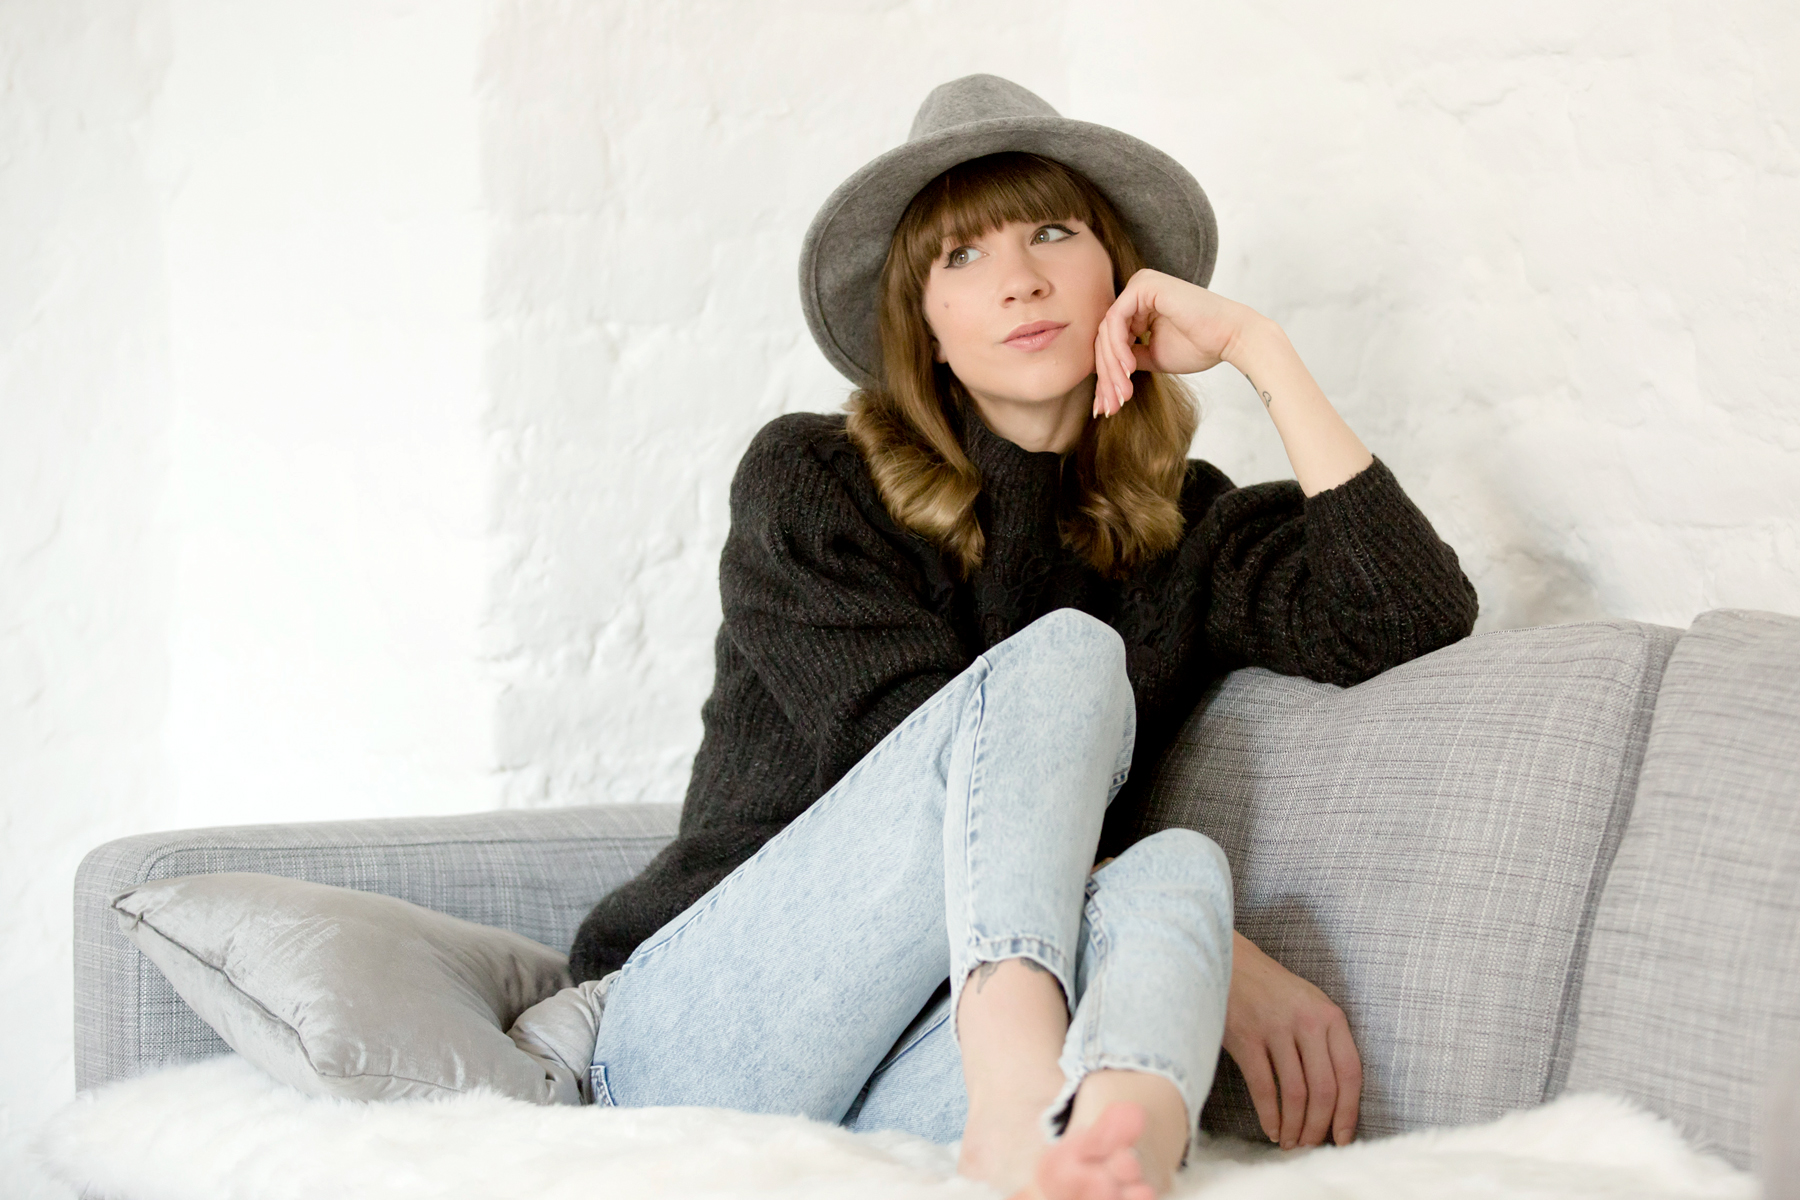 home new year grey hat mom jeans pull&bear knit cozy homewear grey ikea karlstadt couch lounge loft bangs brunette fashionblogger interior home cats & dogs blog ricarda schernus modeblog 2